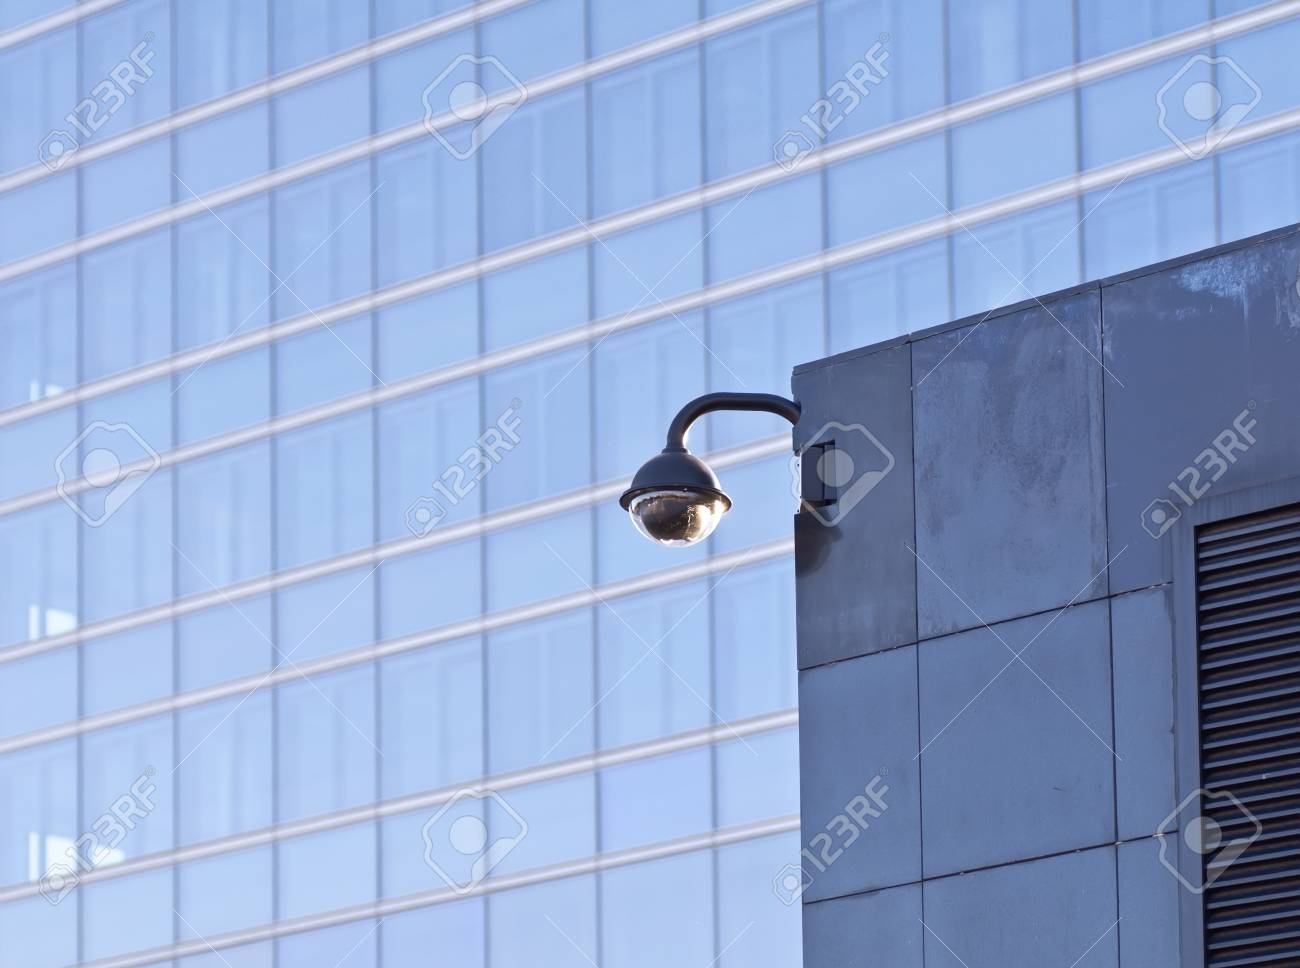 Security video camera Against modern building Stock Photo - 13815586